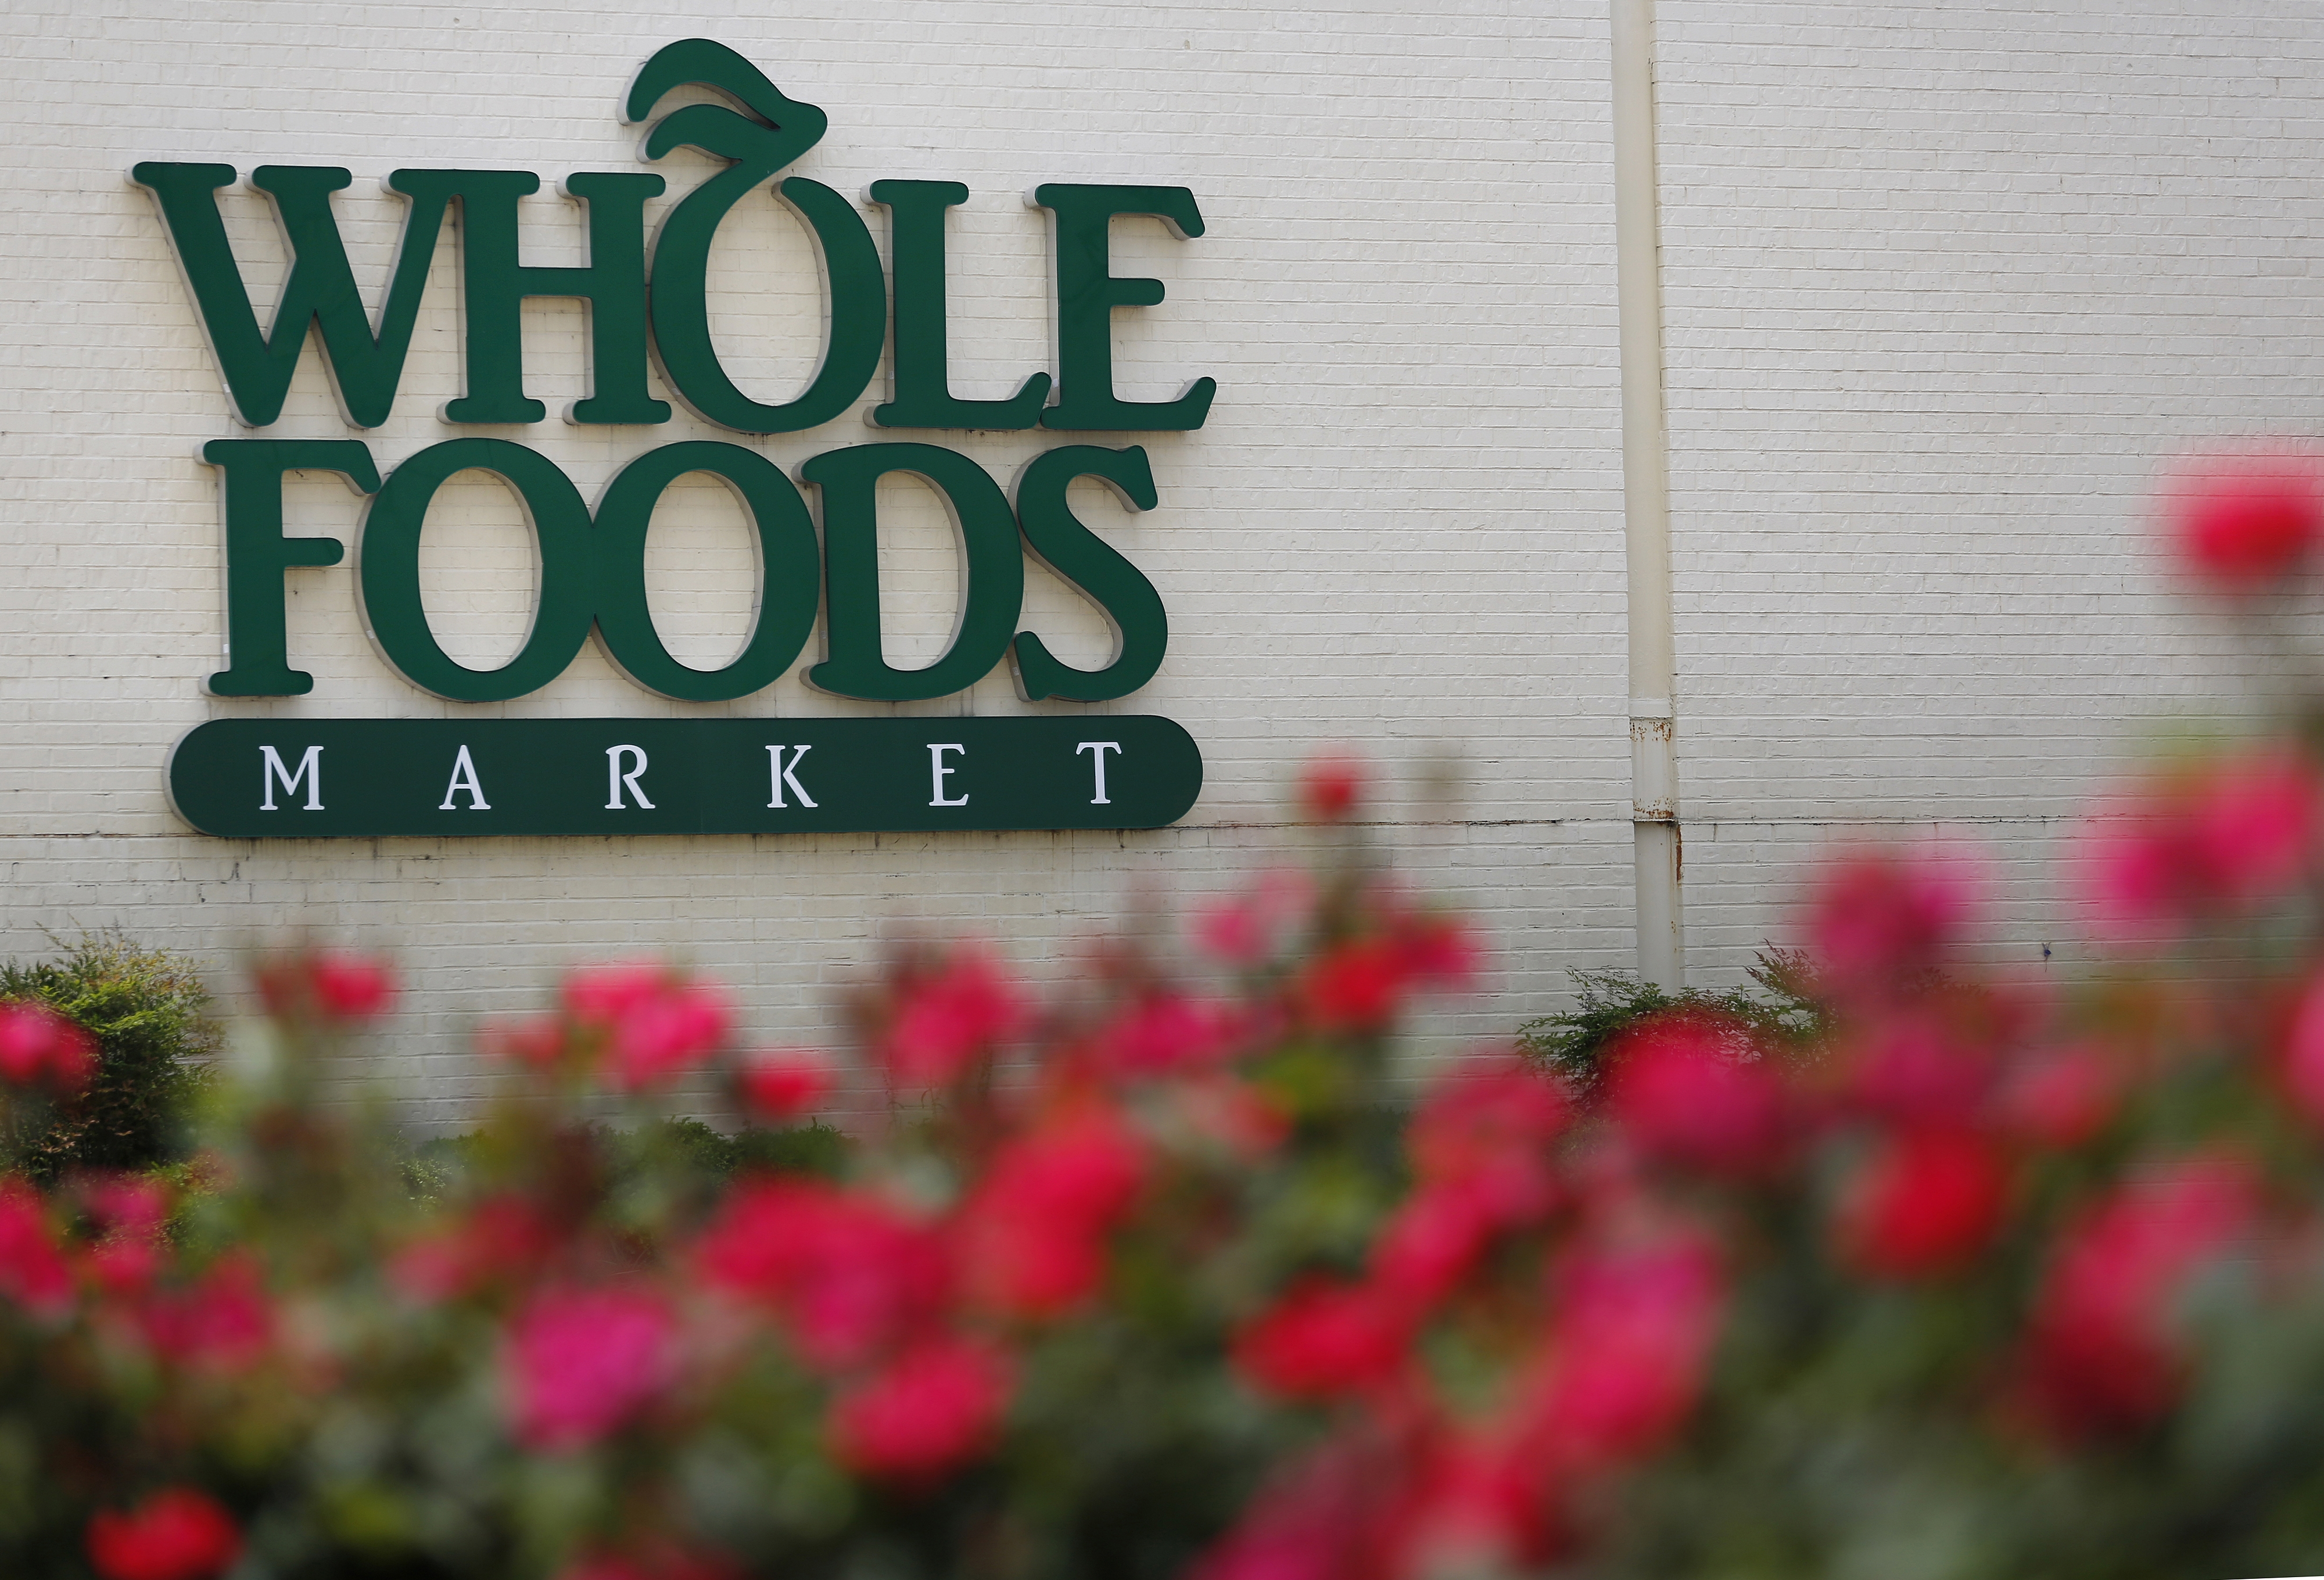 Whole Foods has started construction on its store in the Northtown Plaza in Amherst. (Bloomberg News)